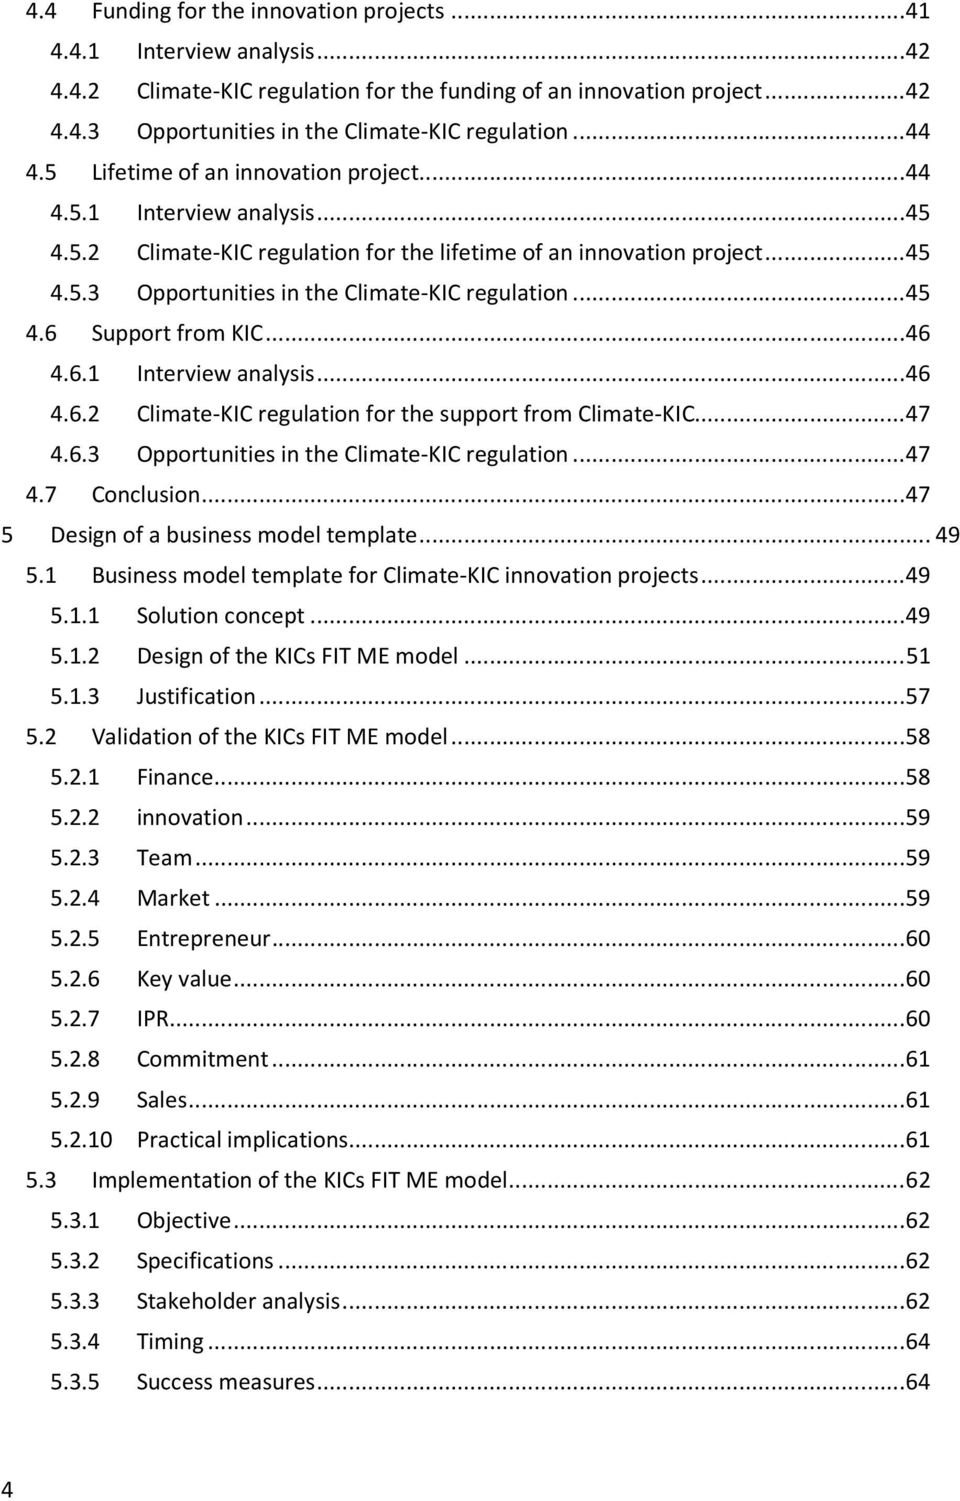 .. 45 4.6 Support from KIC... 46 4.6.1 Interview analysis... 46 4.6.2 Climate-KIC regulation for the support from Climate-KIC... 47 4.6.3 Opportunities in the Climate-KIC regulation... 47 4.7 Conclusion.